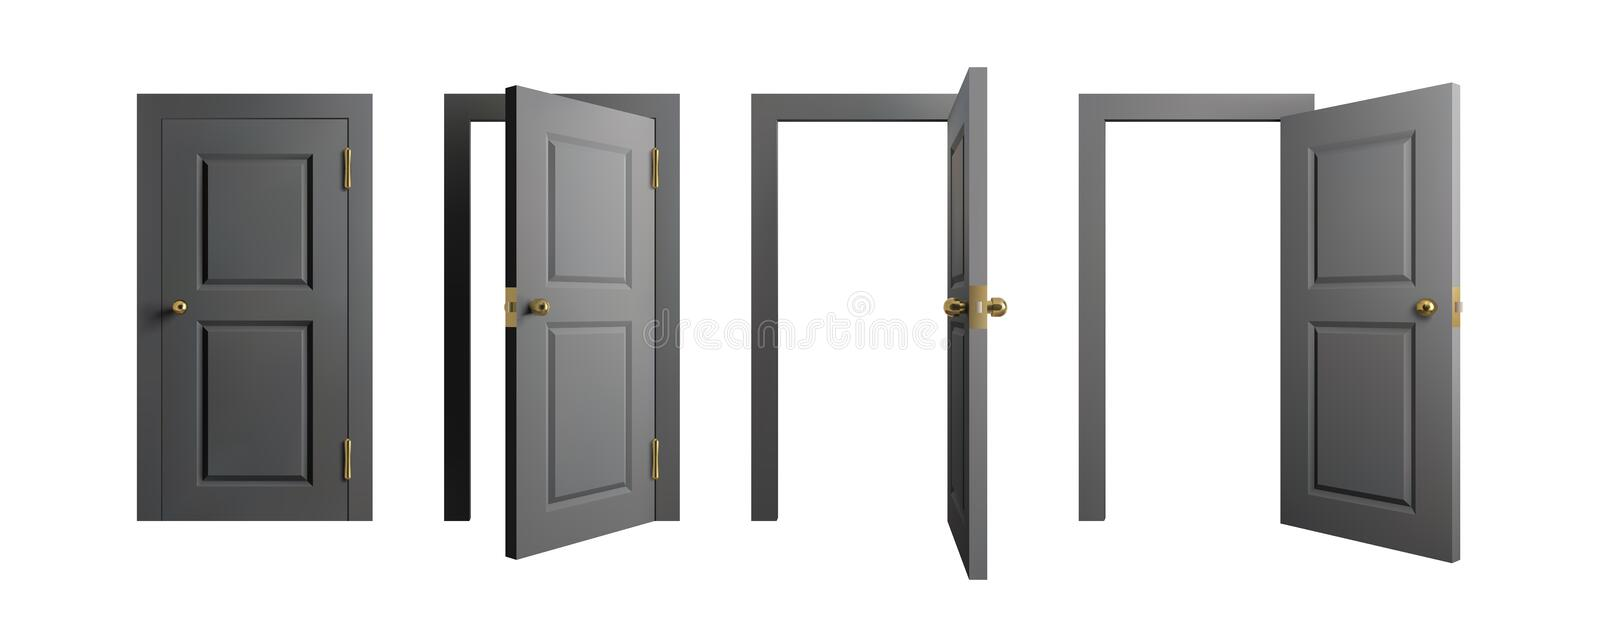 Doors set. Front view opened and closed door. Realistic isolated vector illustration. vector illustration